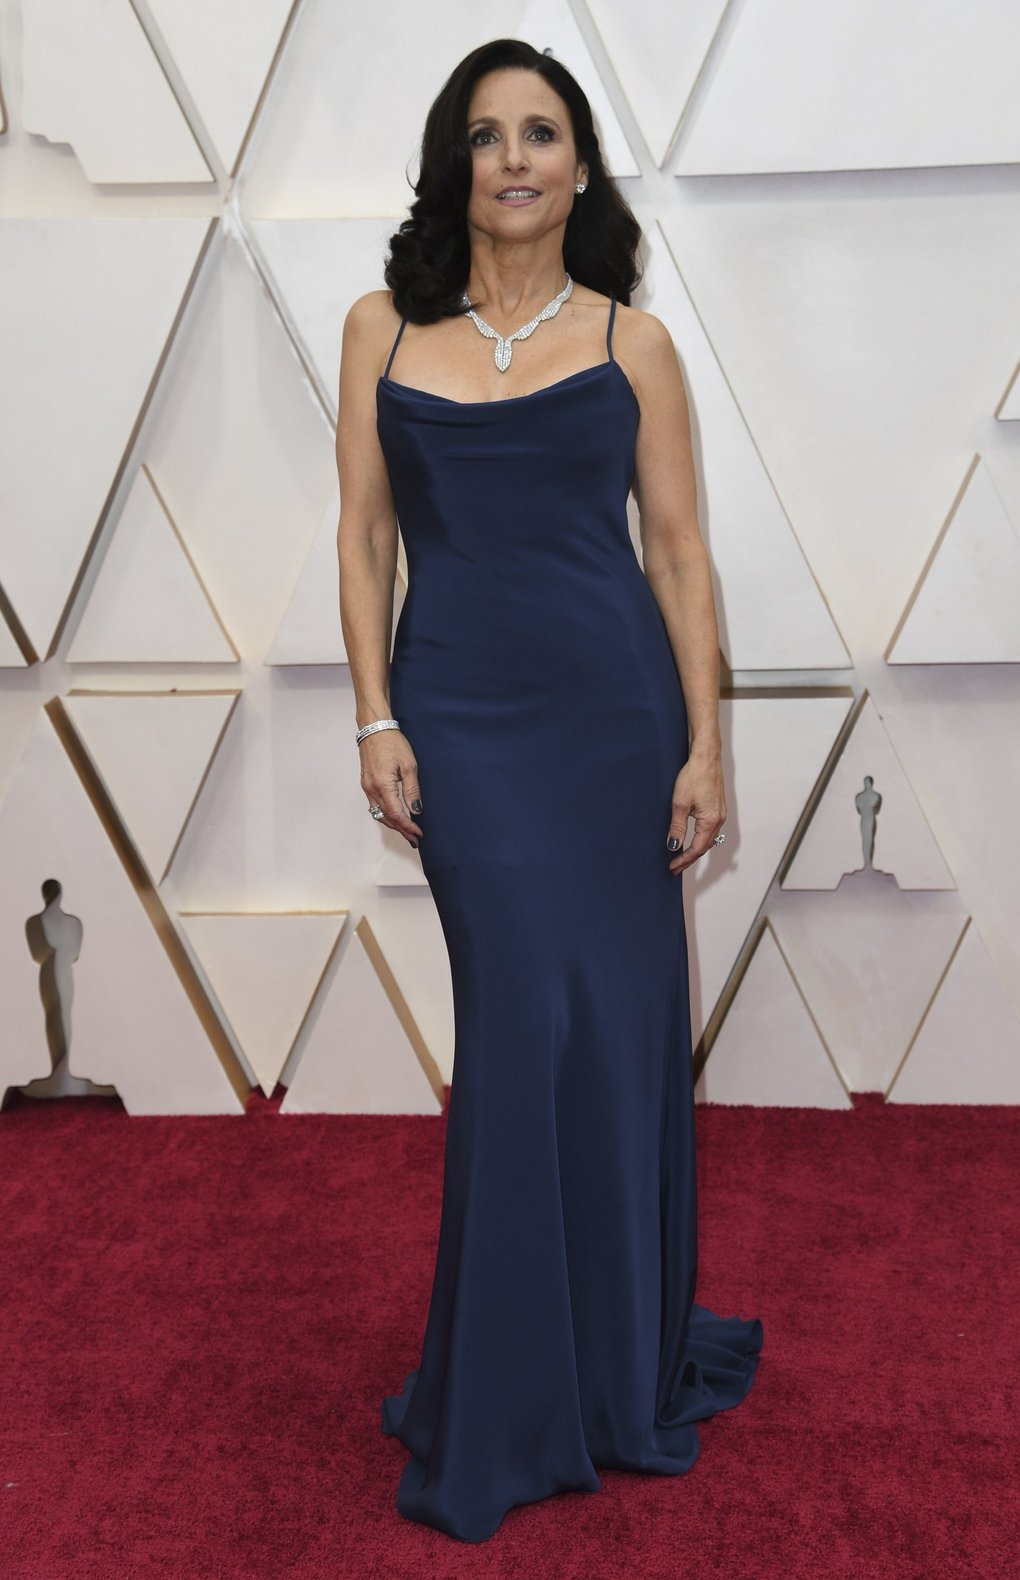 Julia Louis-Dreyfus arrives at the Oscars on Sunday, Feb. 9, 2020, at the Dolby Theatre in Los Angeles. (Photo by Richard Shotwell/Invision/AP)